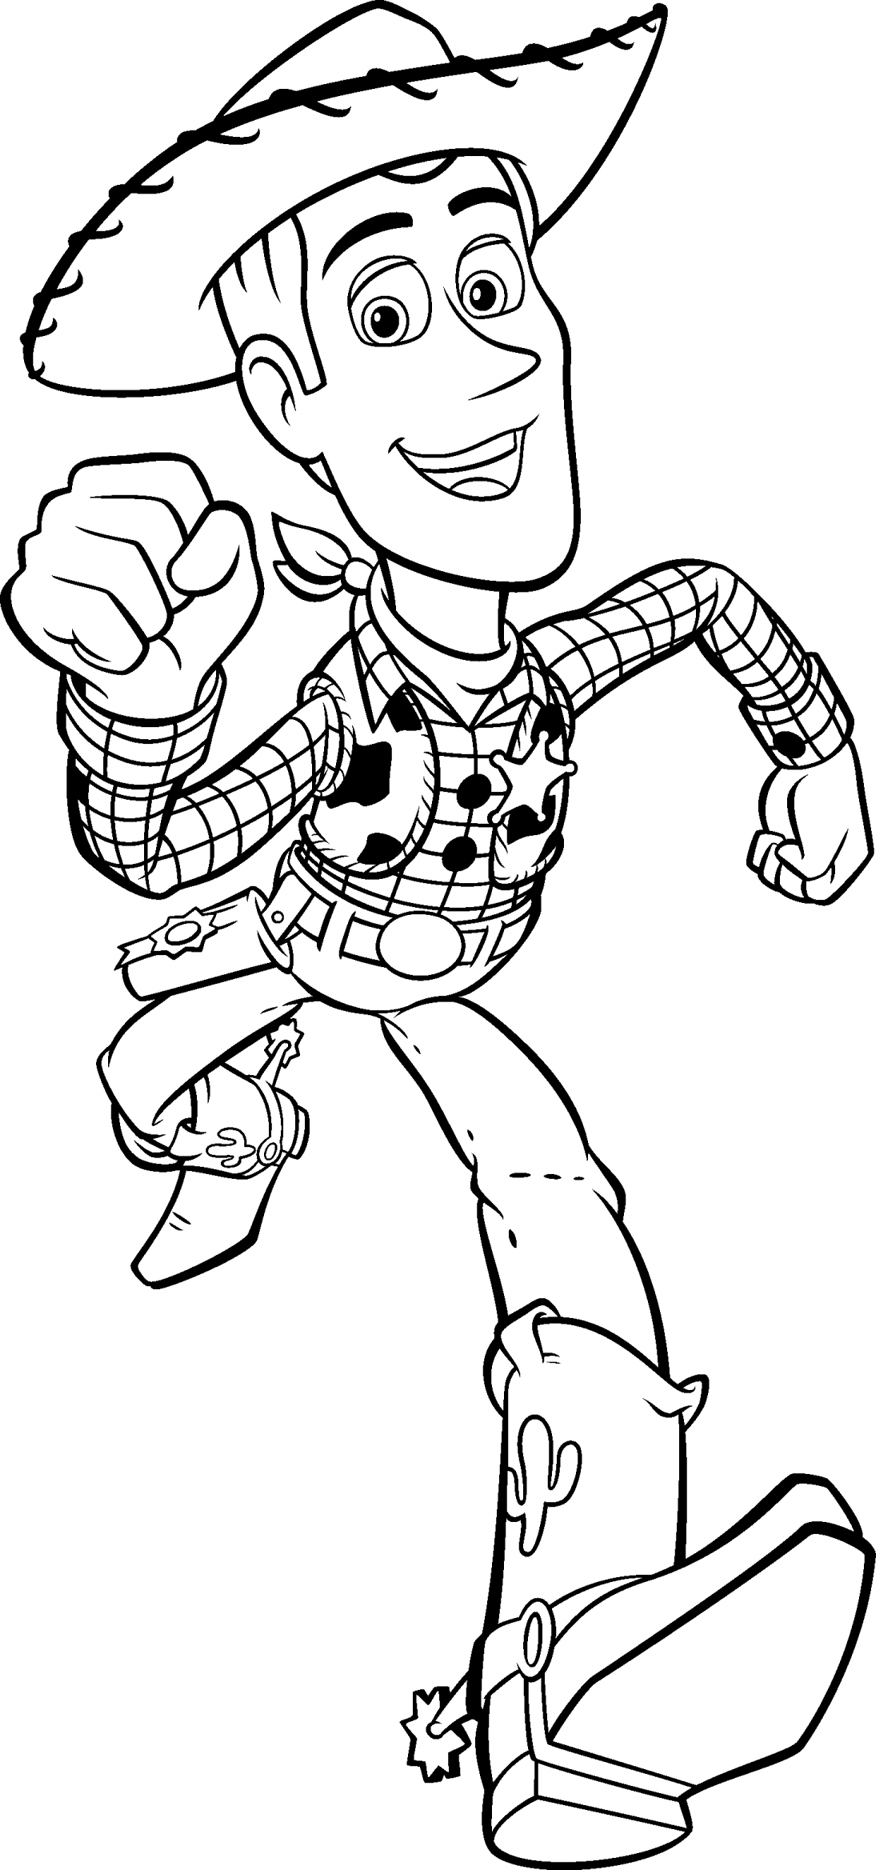 childrens disney coloring pages - photo#32